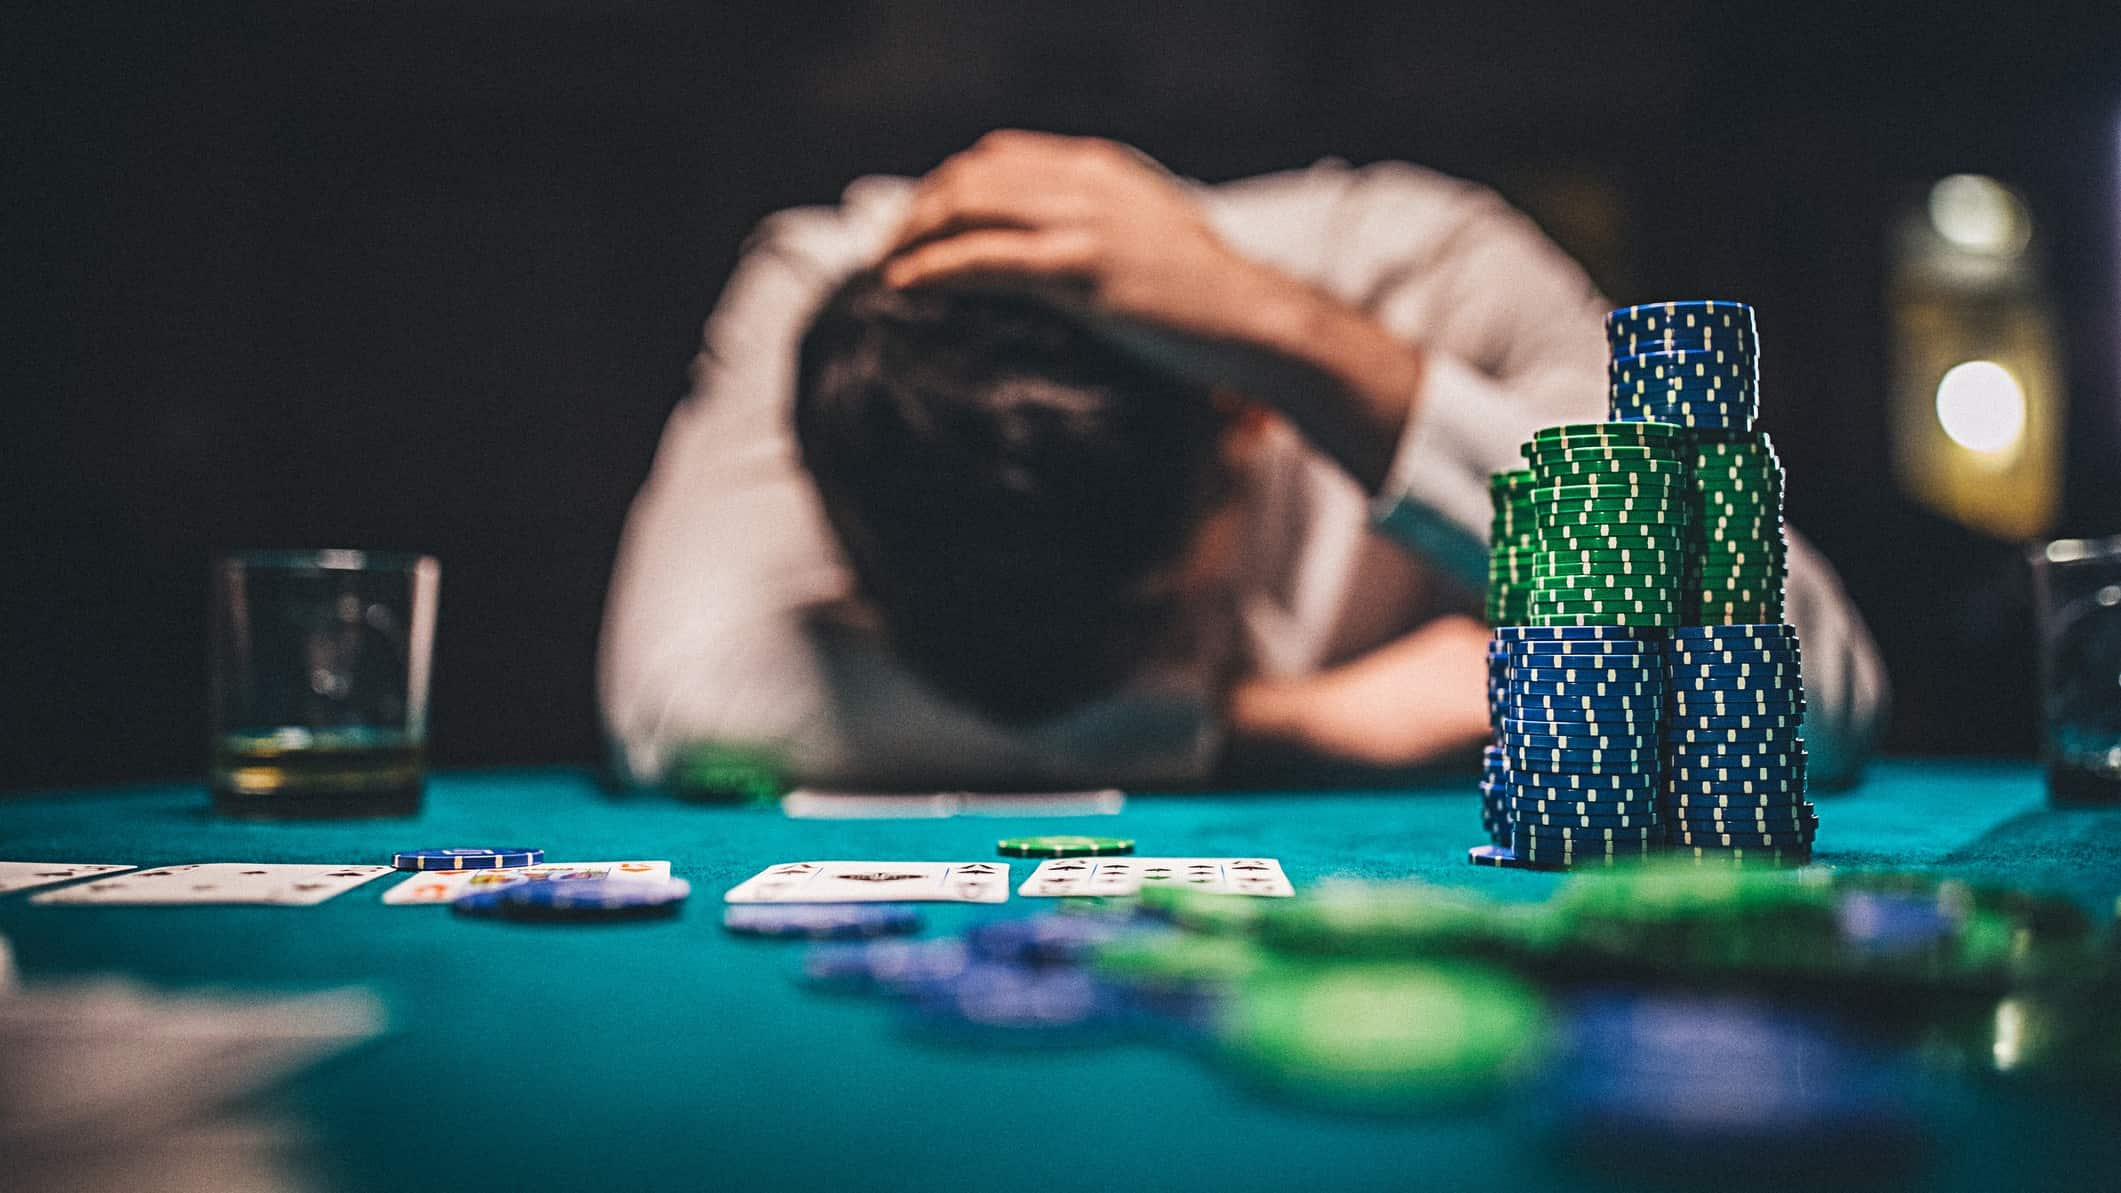 a sad gambler slumps at a casino table with hands on head and a large pile of casino chips in the foreground.